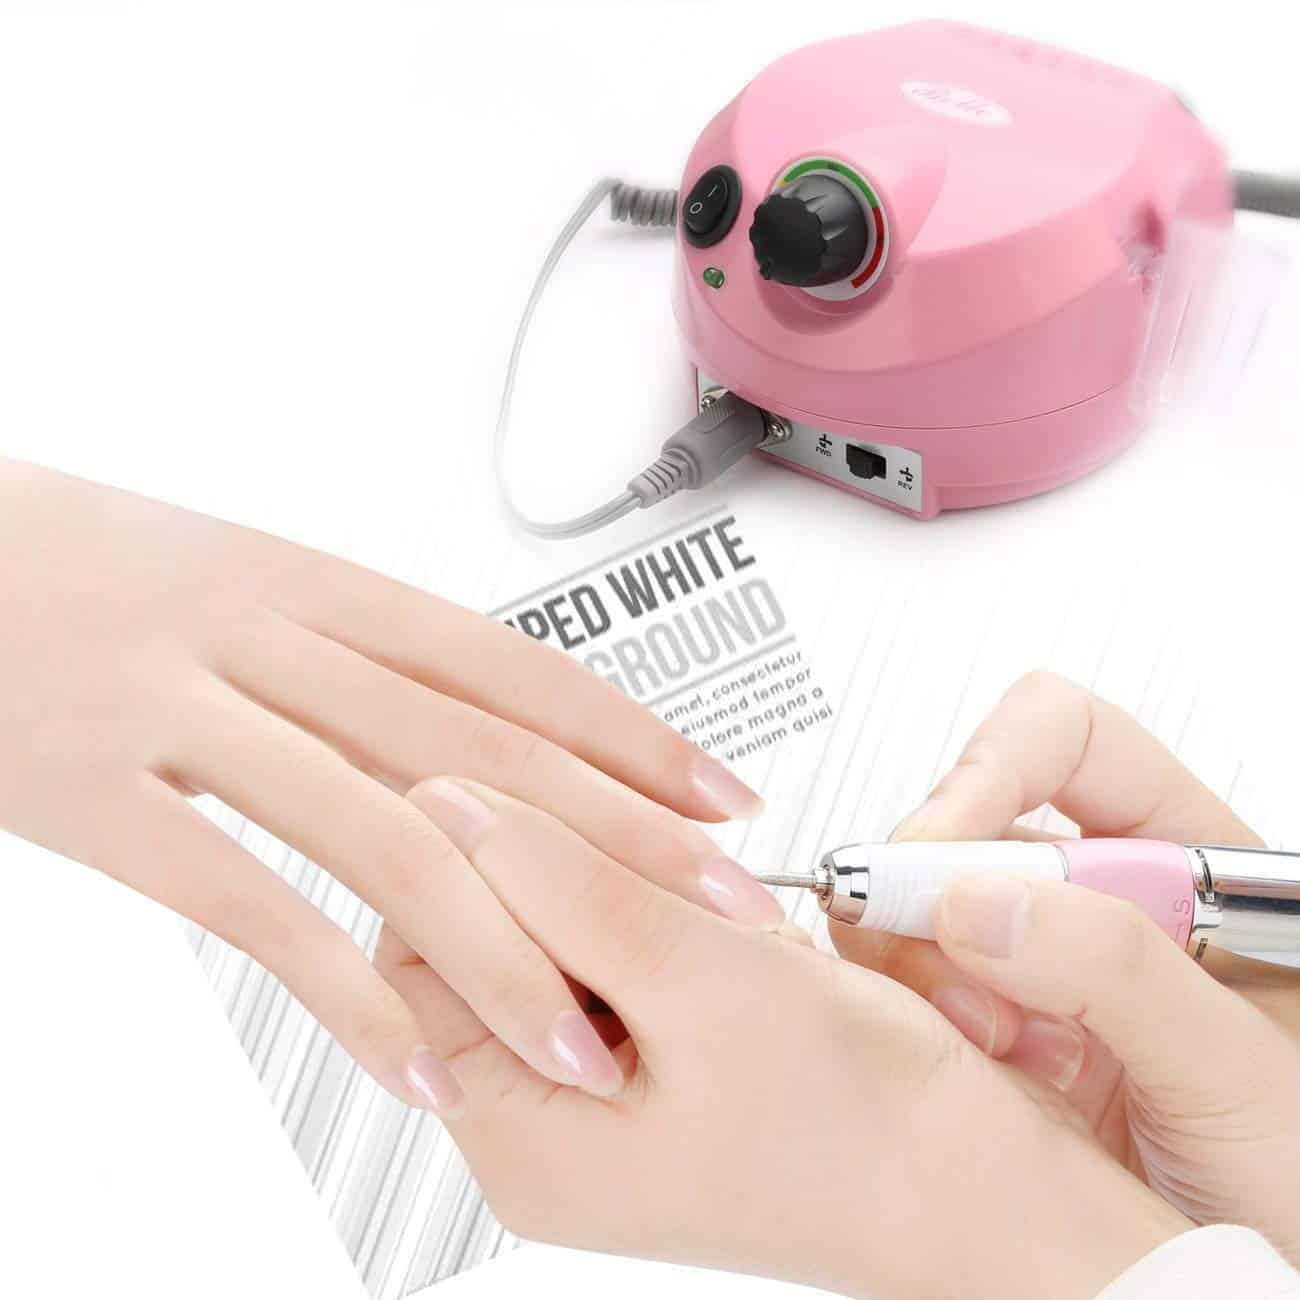 Top 10 Best Professional Electric Nail Drills In 2020 Reviews | Buyer's Guide